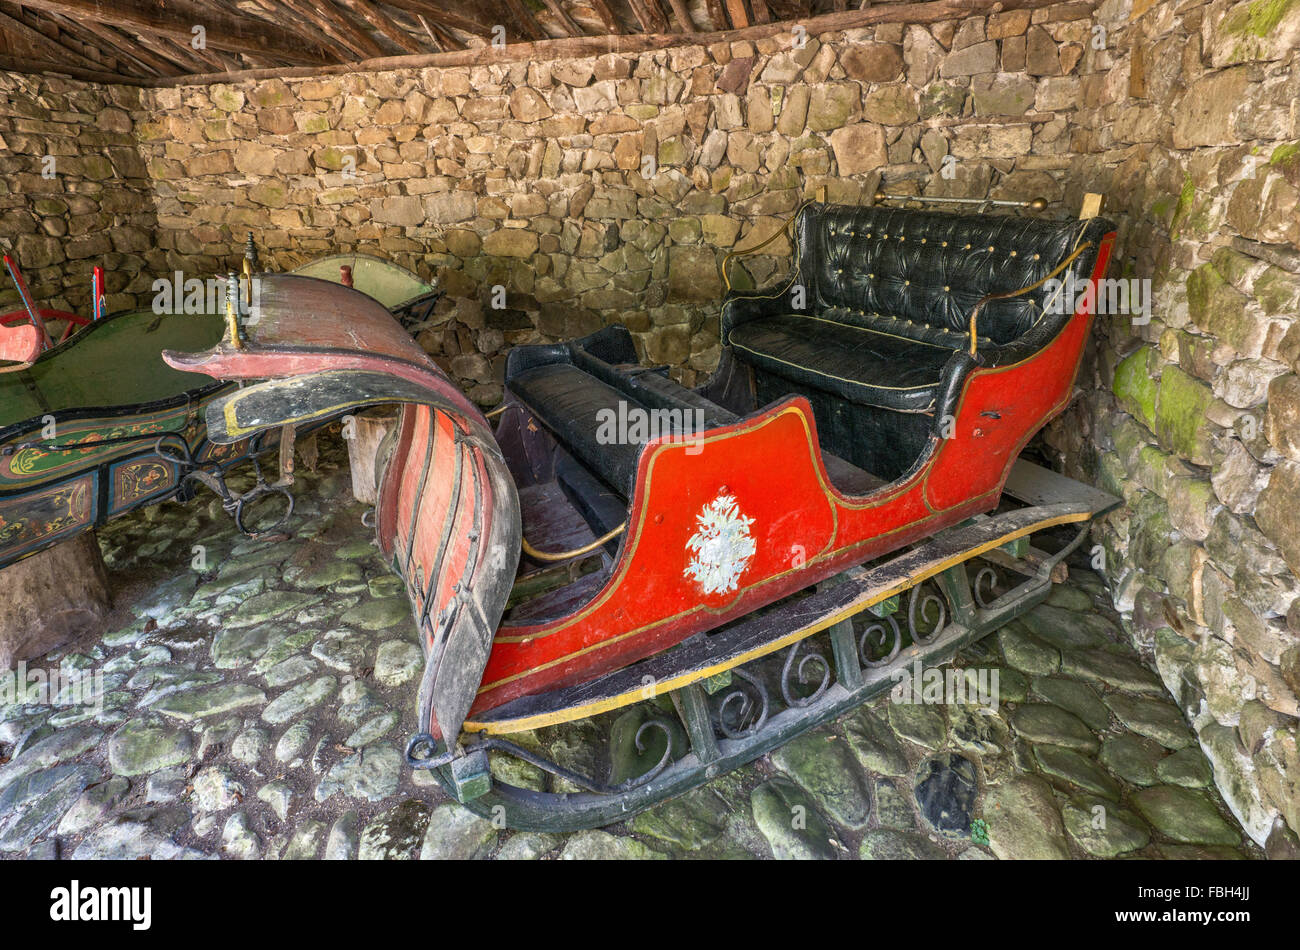 1930s sleigh at Etar Architectural Ethnographic Complex (Etara), open-air museum in Gabrovo, Bulgaria - Stock Image